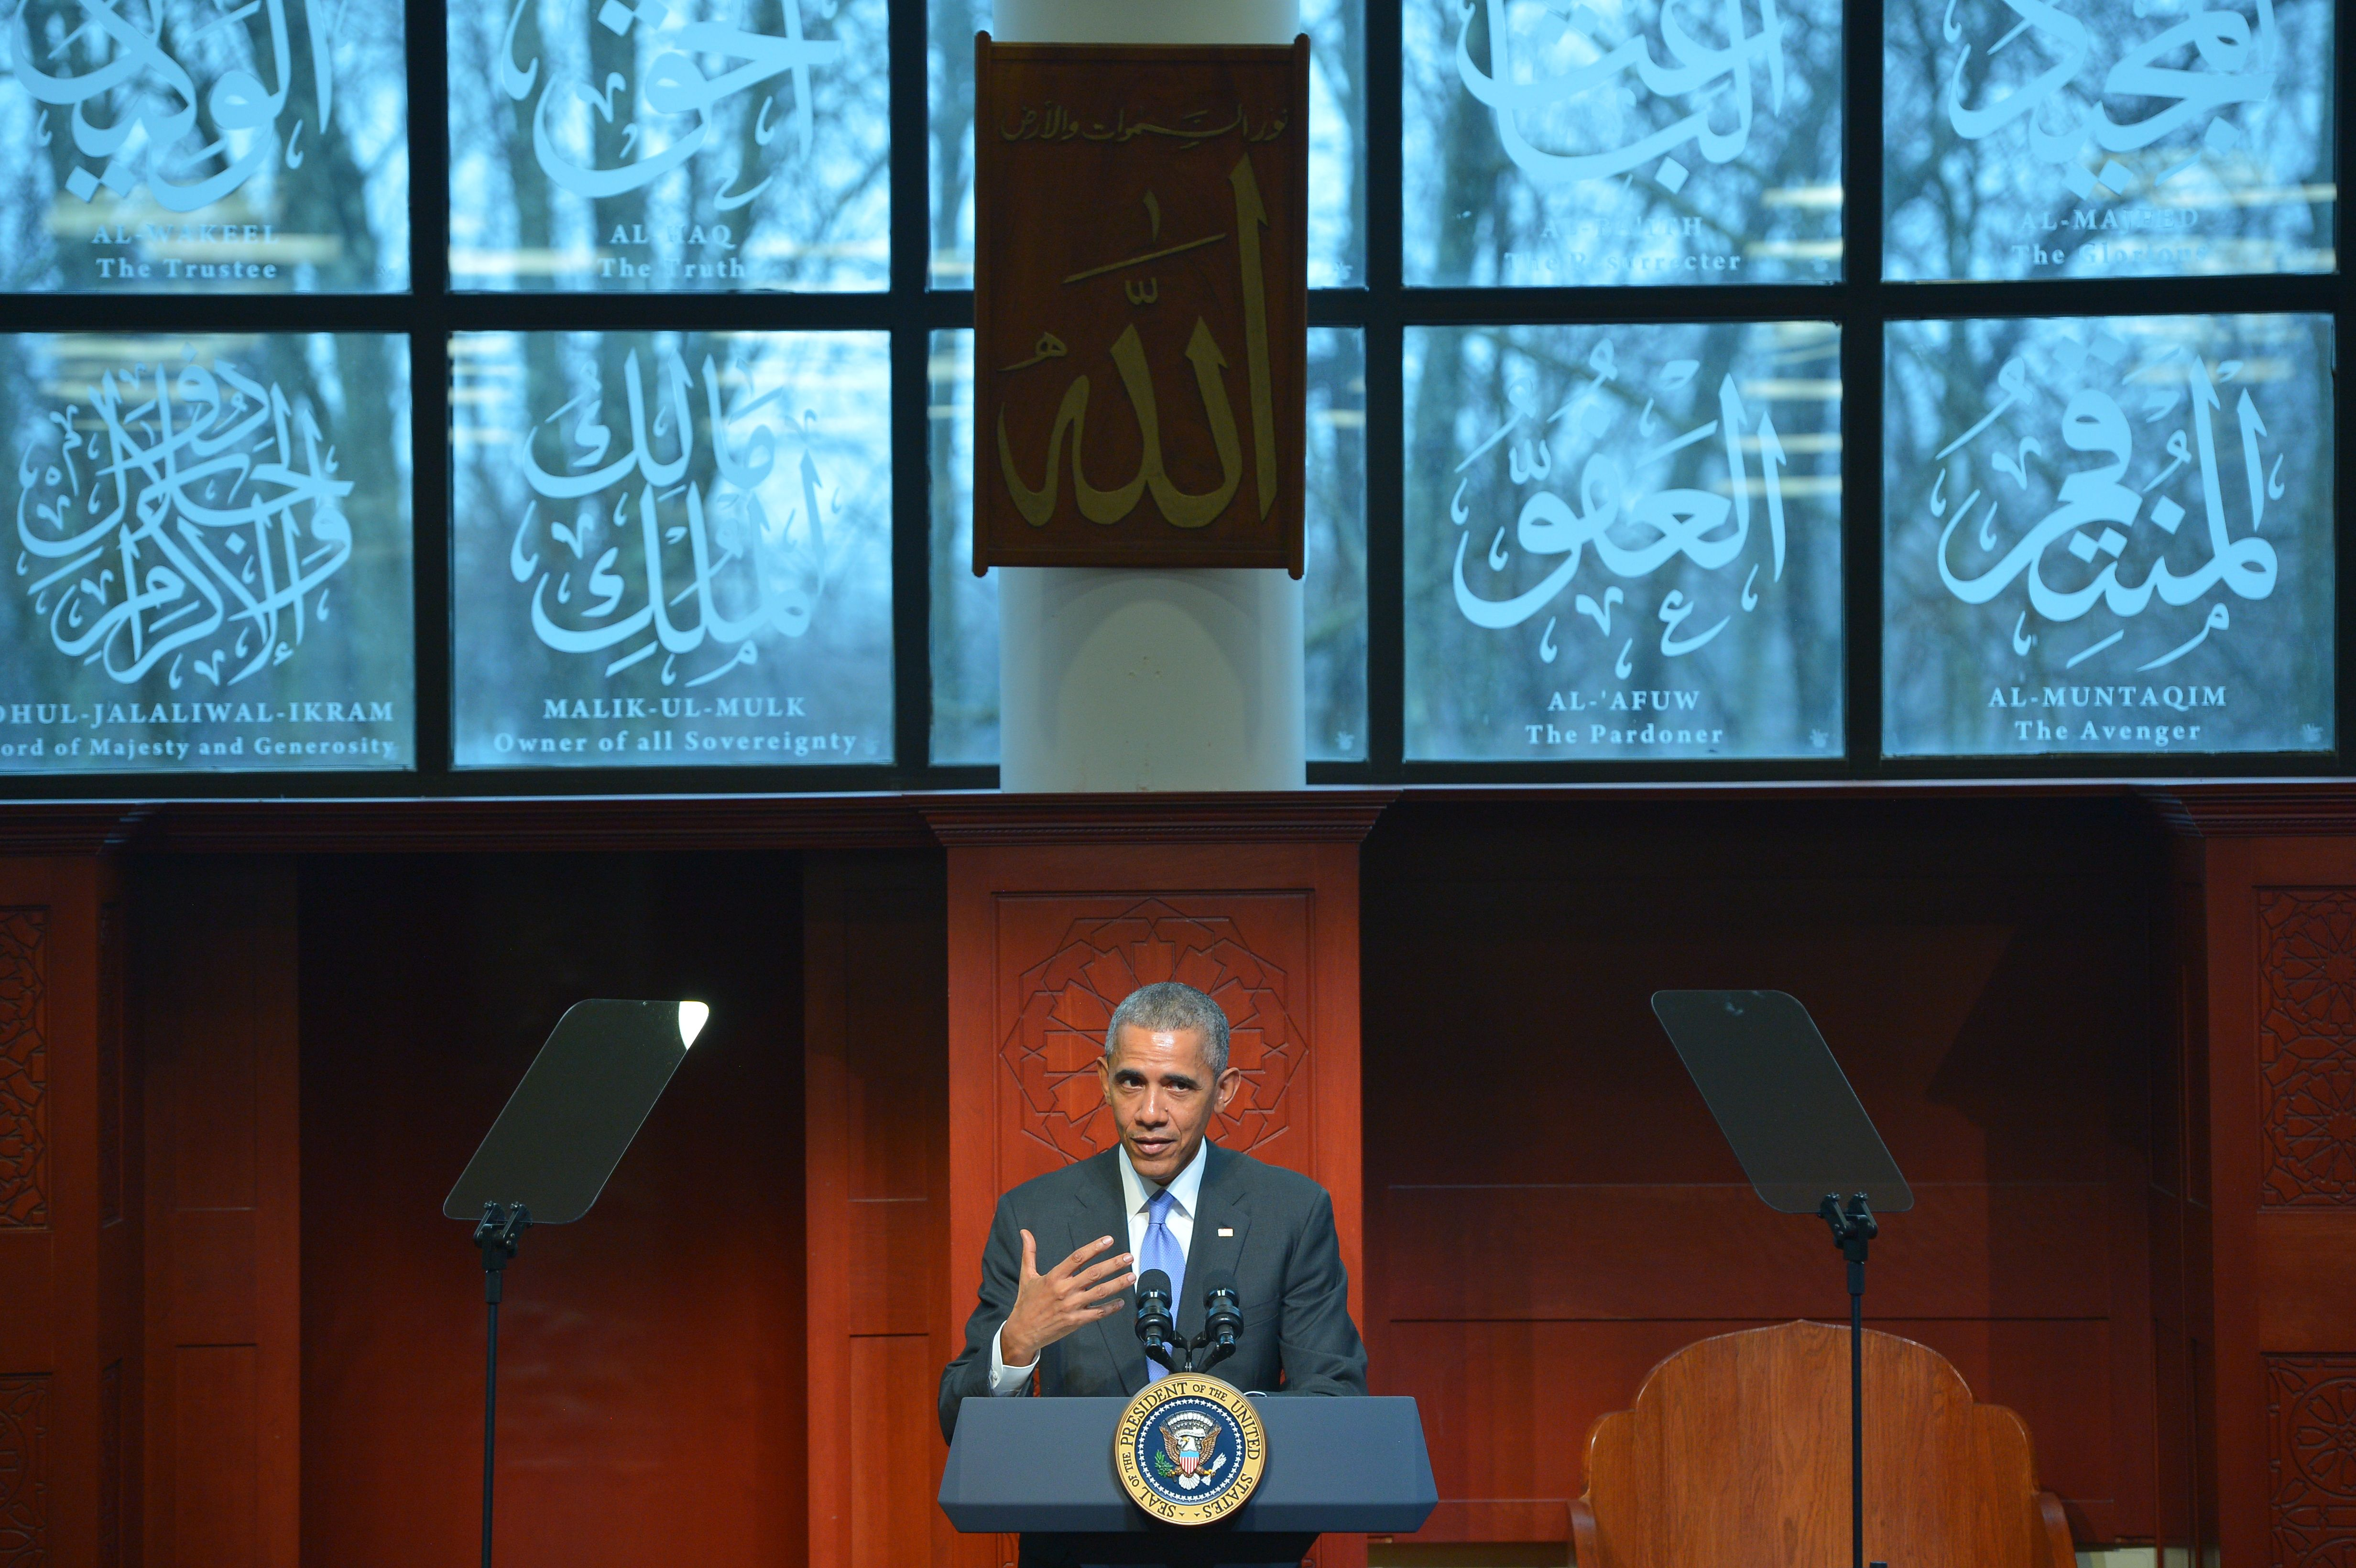 President Obama speaks at the Islamic Society of Baltimore on February 3, 2016.